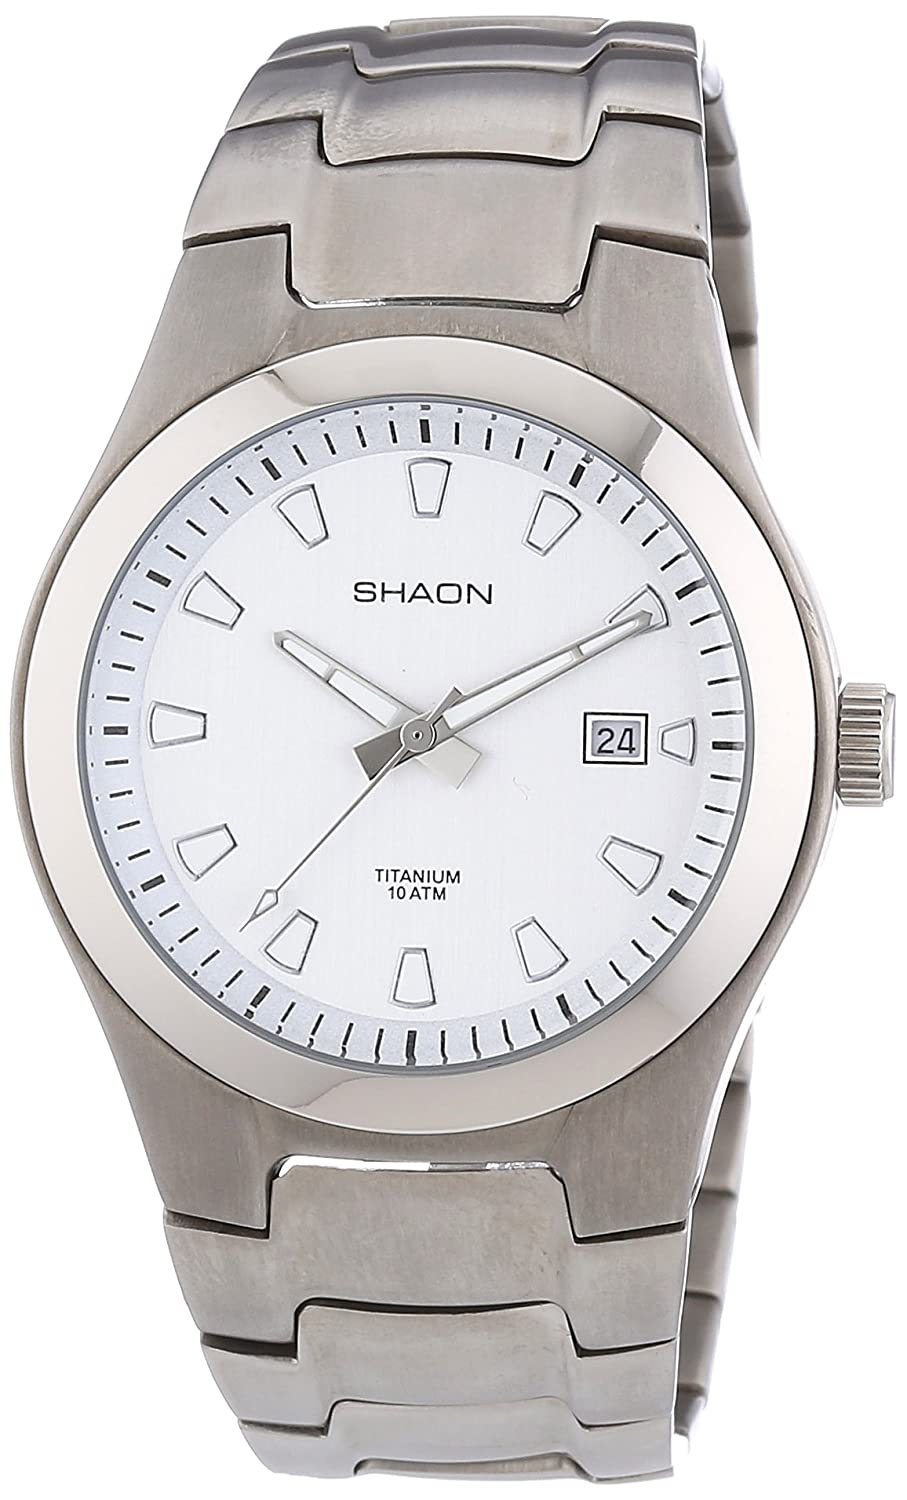 Shaon Herren-Armbanduhr XL Analog Quarz Titan 53-7030-88